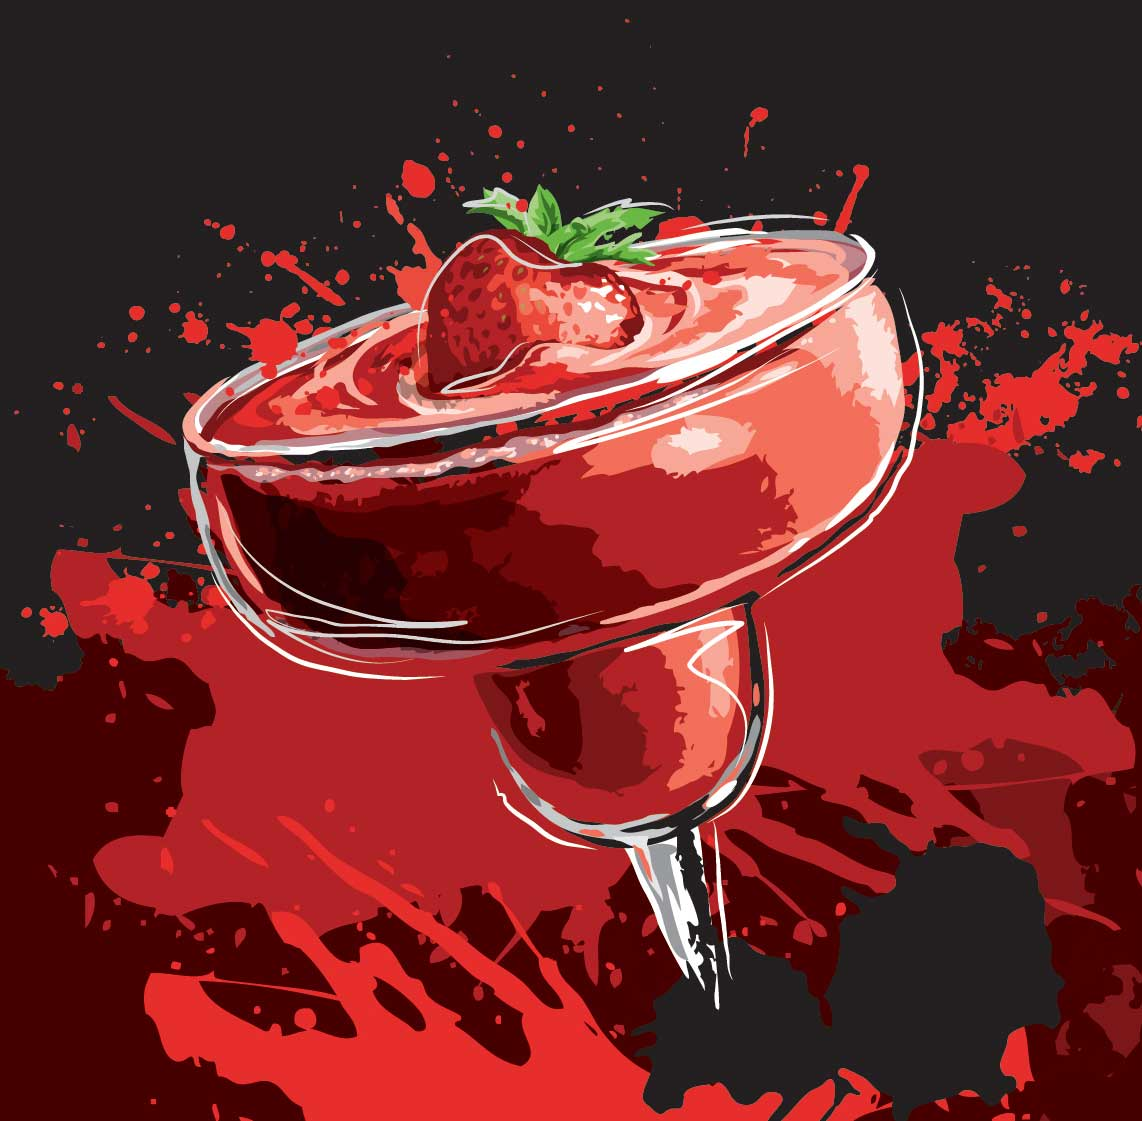 Chris Musselman Illustration TGIF wild strawberry daiquiri splash drink